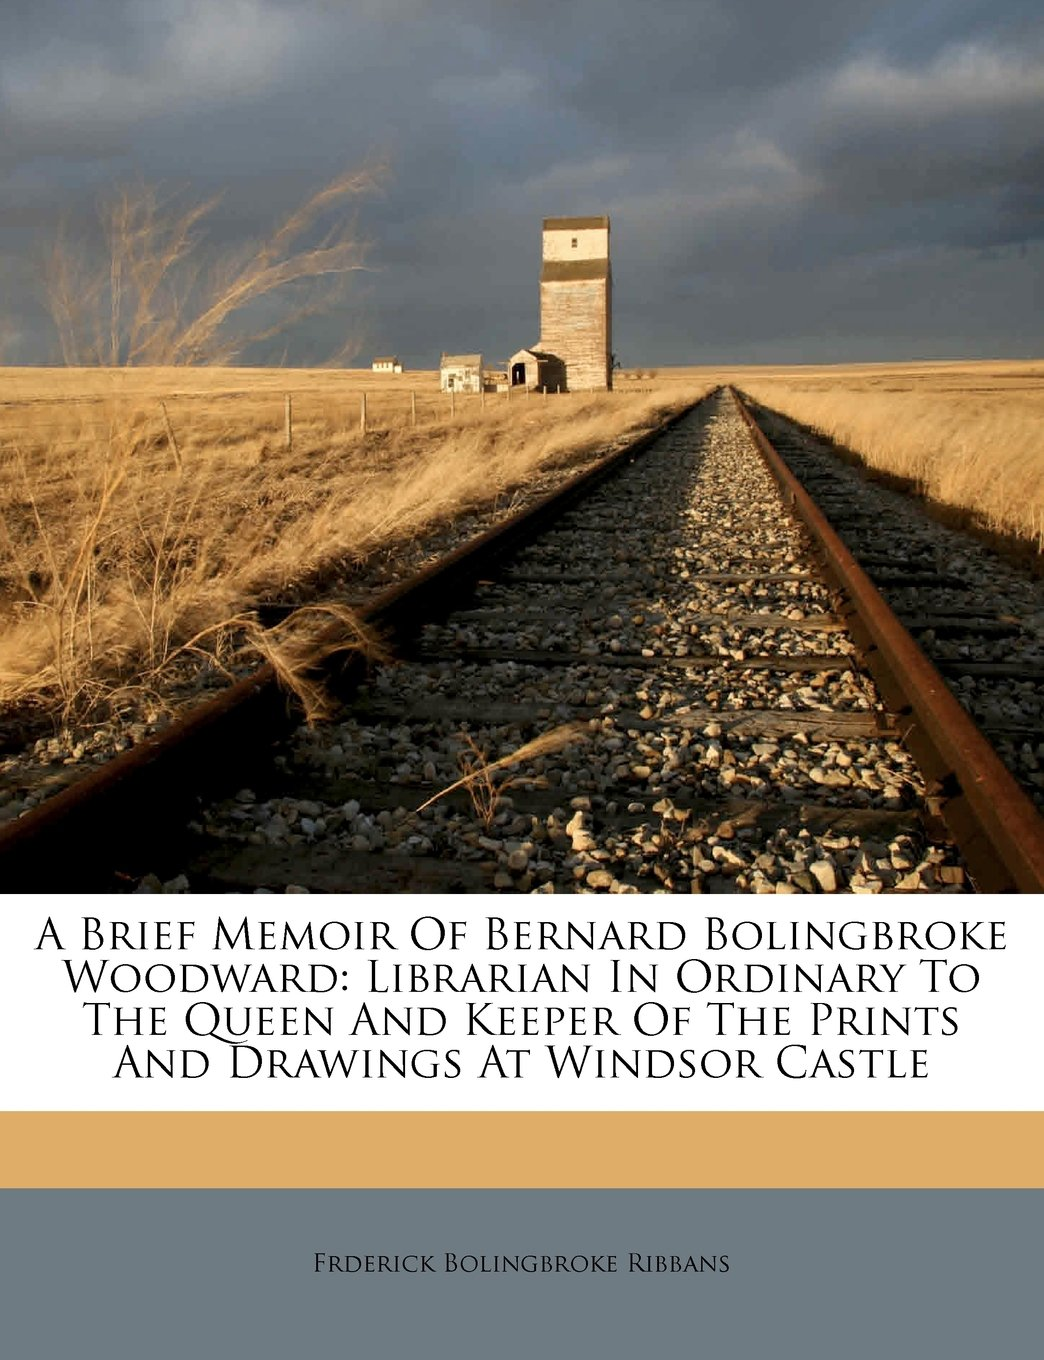 Download A Brief Memoir Of Bernard Bolingbroke Woodward: Librarian In Ordinary To The Queen And Keeper Of The Prints And Drawings At Windsor Castle PDF